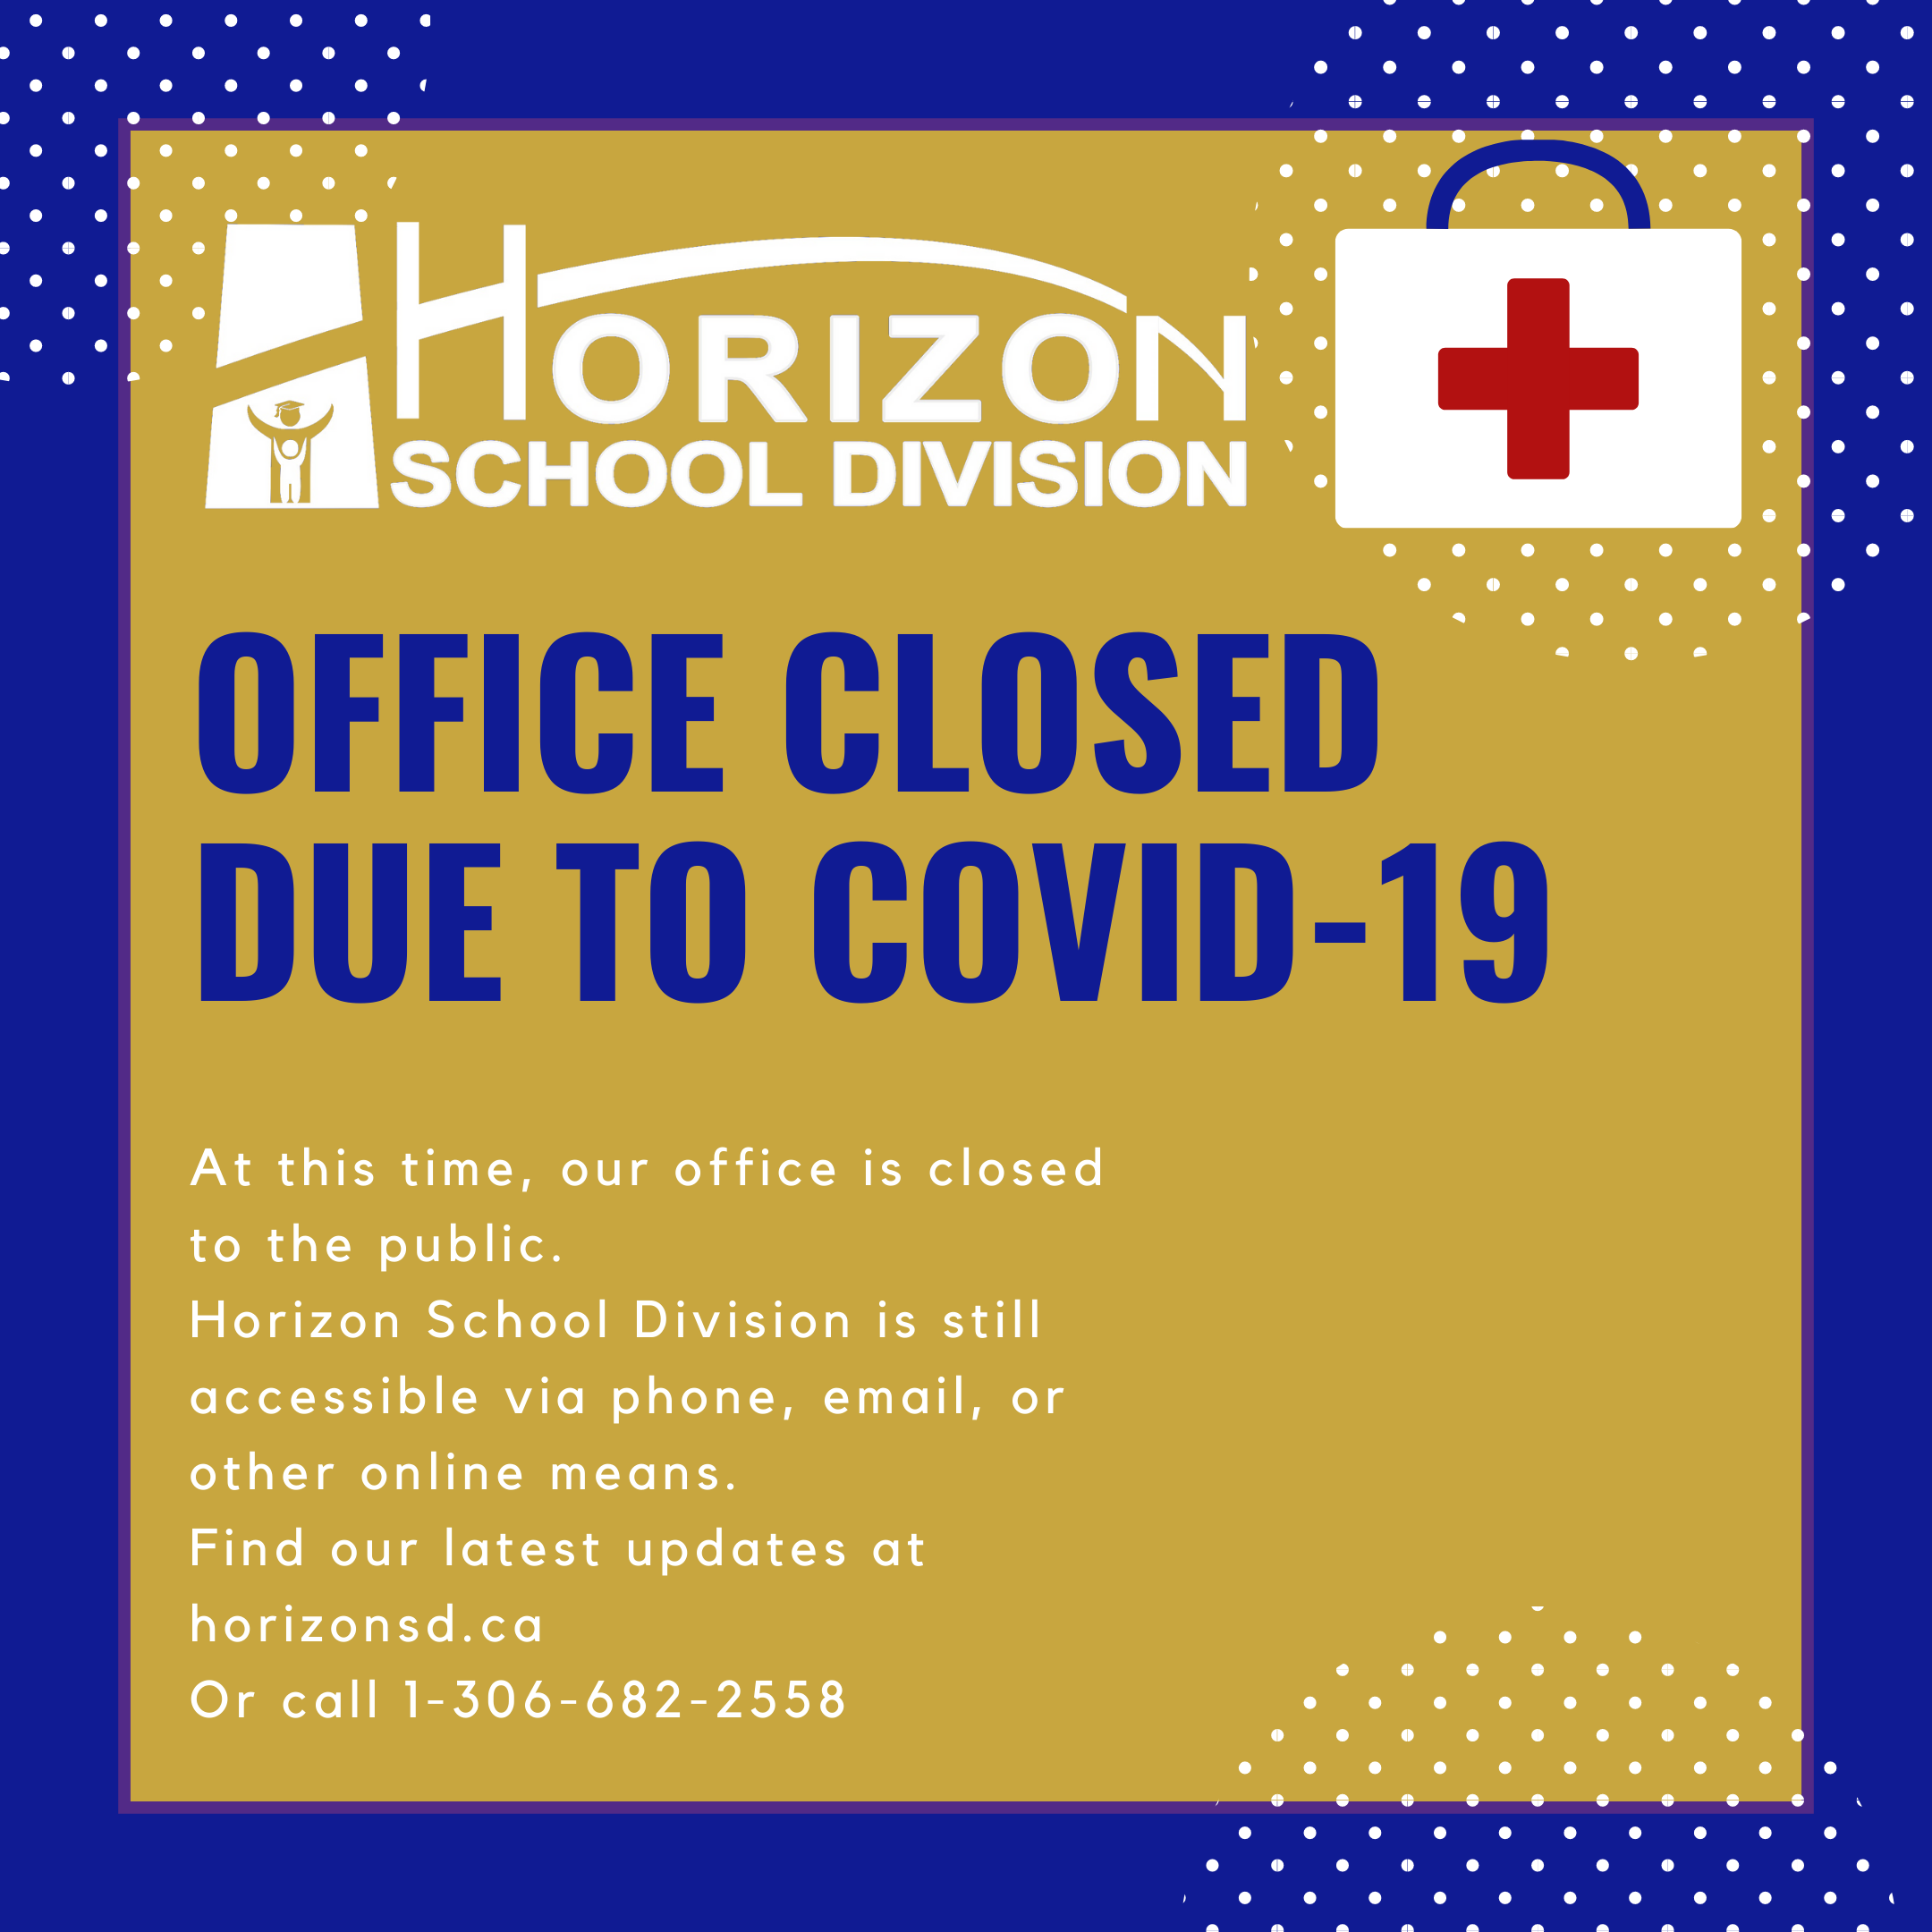 office closed due to covid-19 (1).png